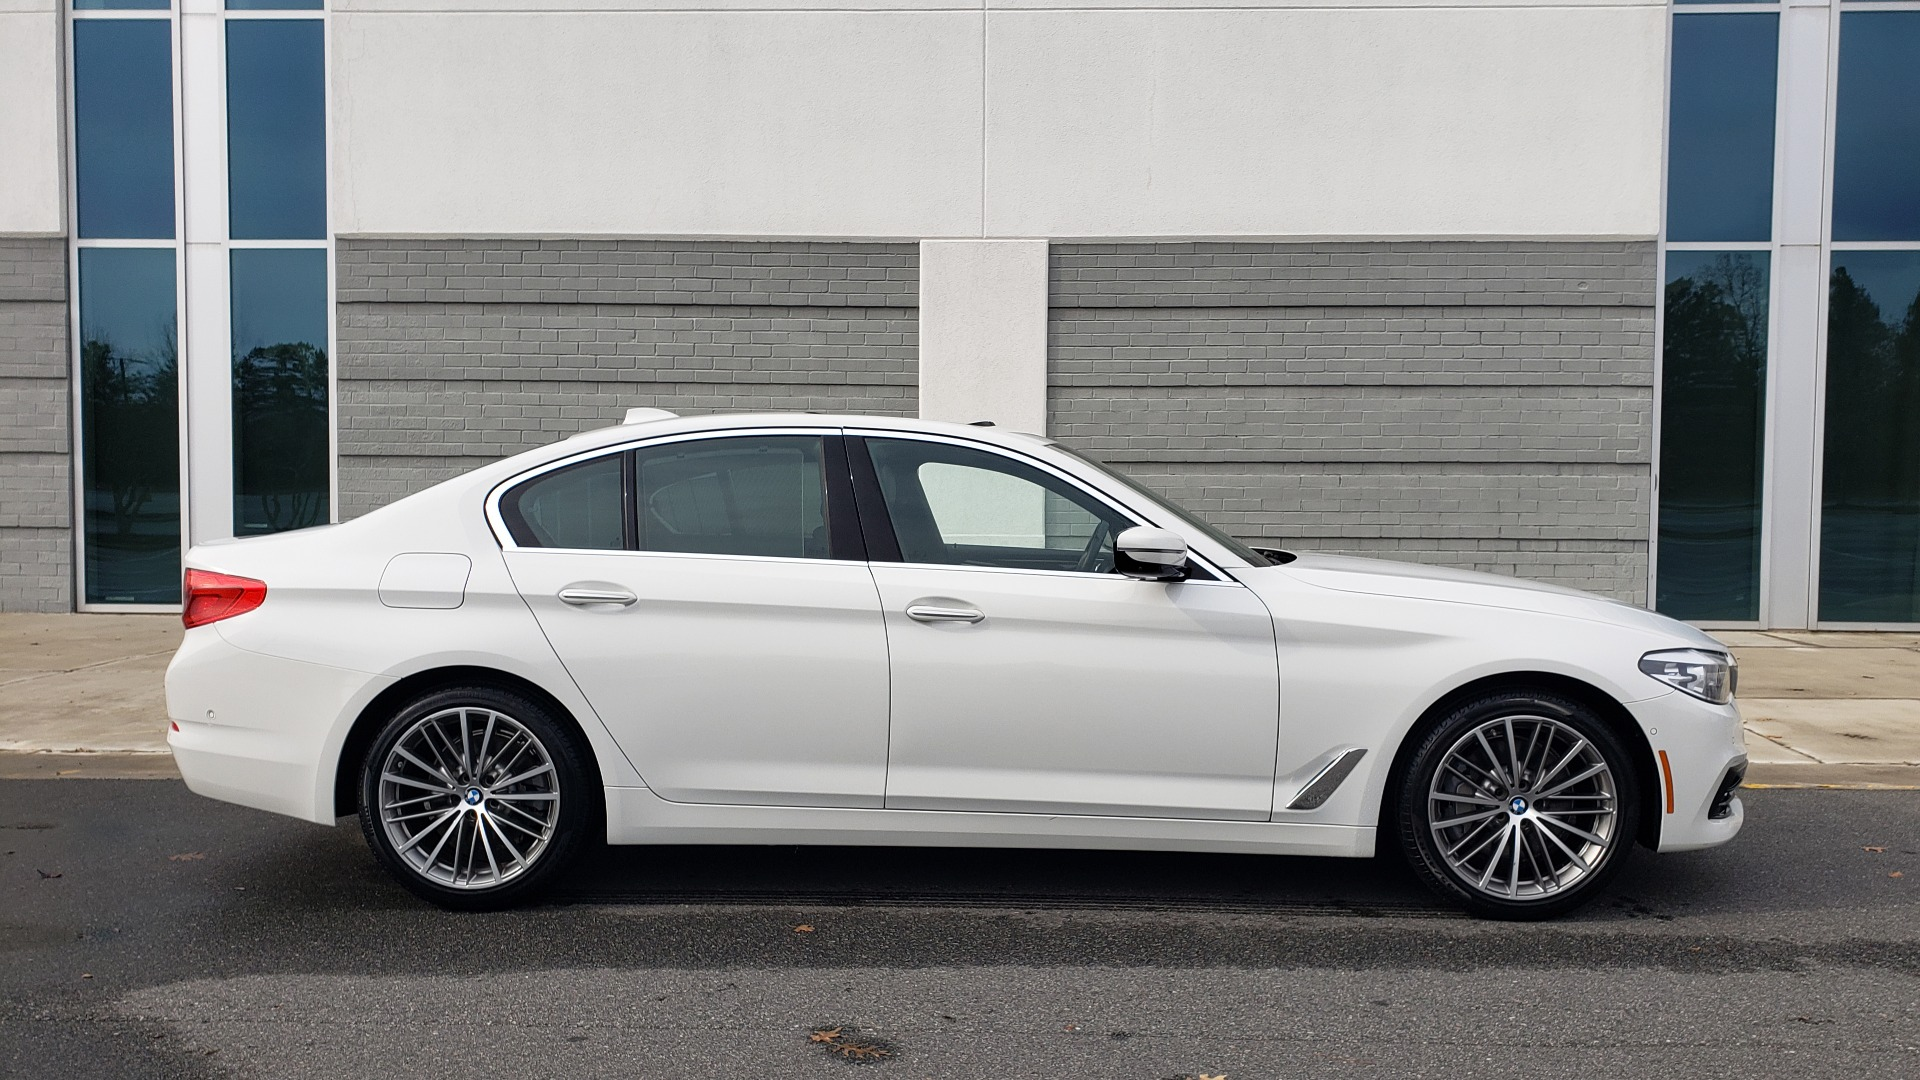 Used 2017 BMW 5 SERIES 530I PREMIUM / DRVR ASST PLUS / NAV / HUD / SUNROOF / REARVIEW for sale Sold at Formula Imports in Charlotte NC 28227 3